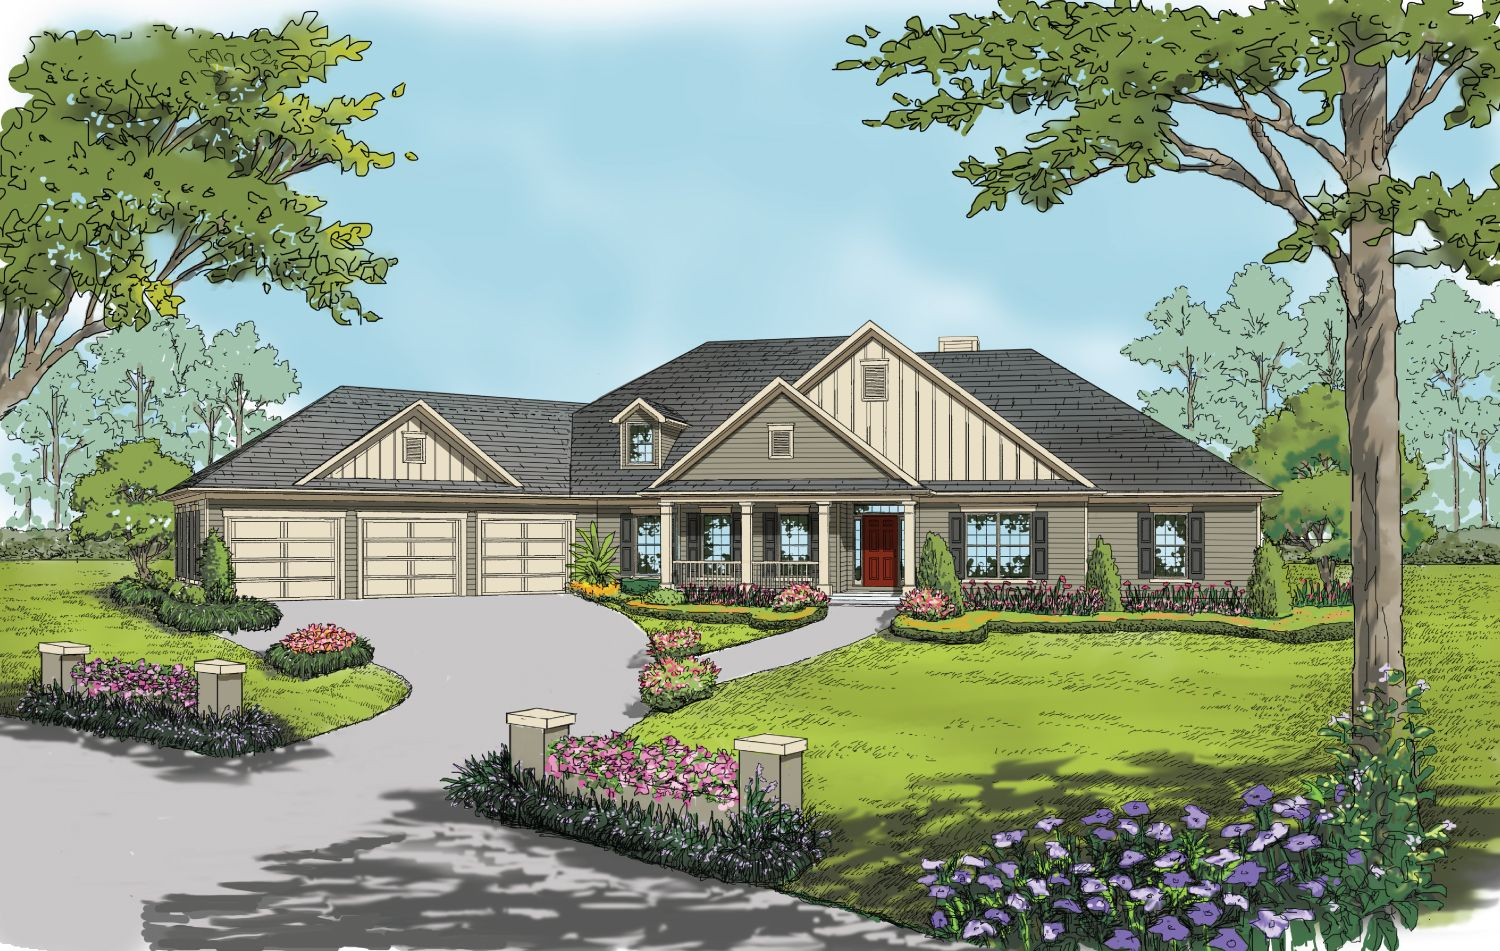 Single Family for Active at Build On Your Lot Monroe Building Center - Delaware A 2608 Executive Point Dr Monroe, North Carolina 28110 United States